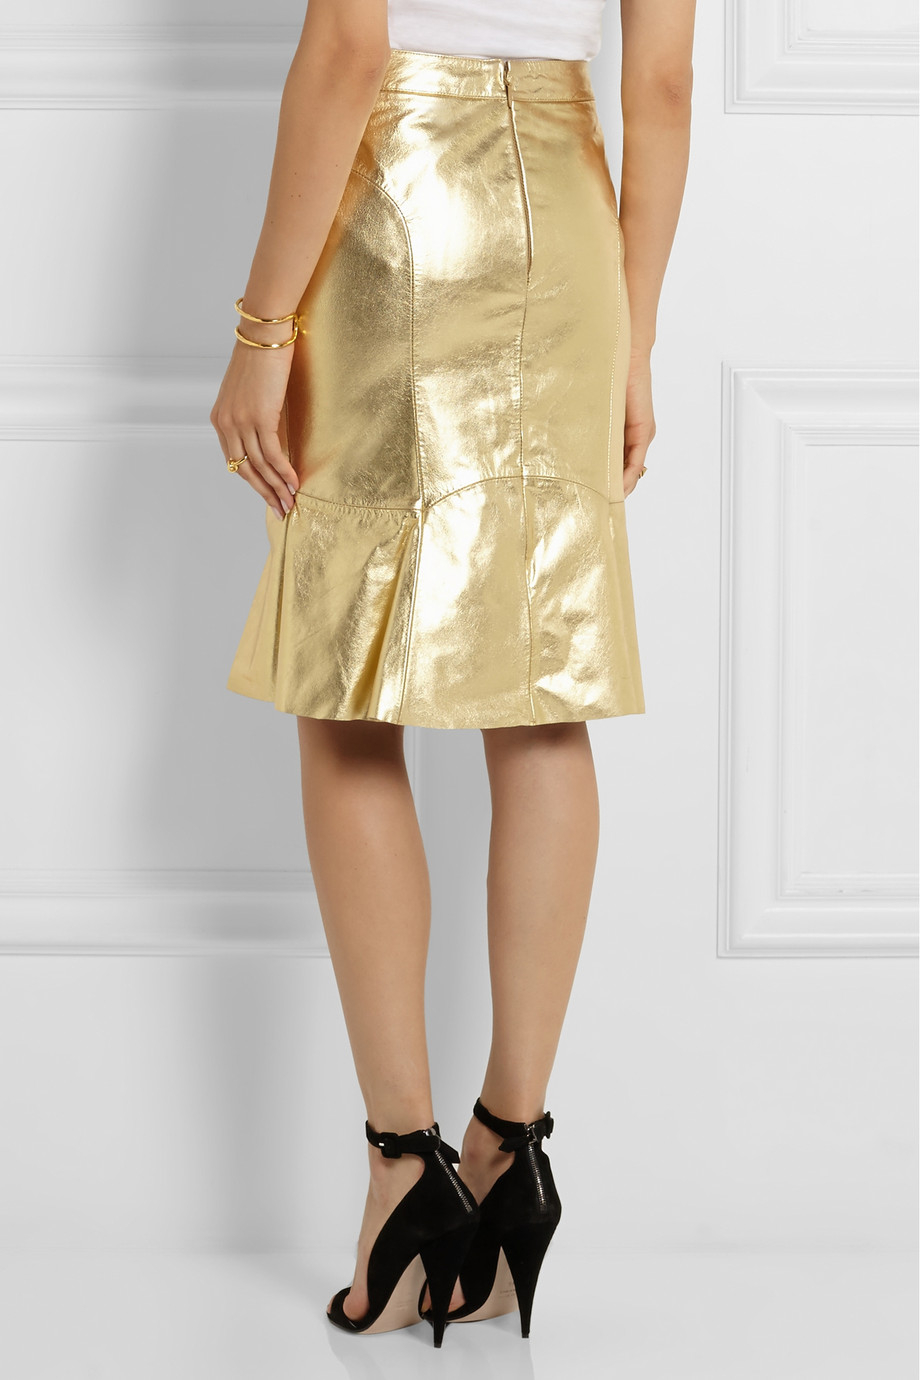 Boutique moschino Metallic Leather Skirt in Metallic | Lyst